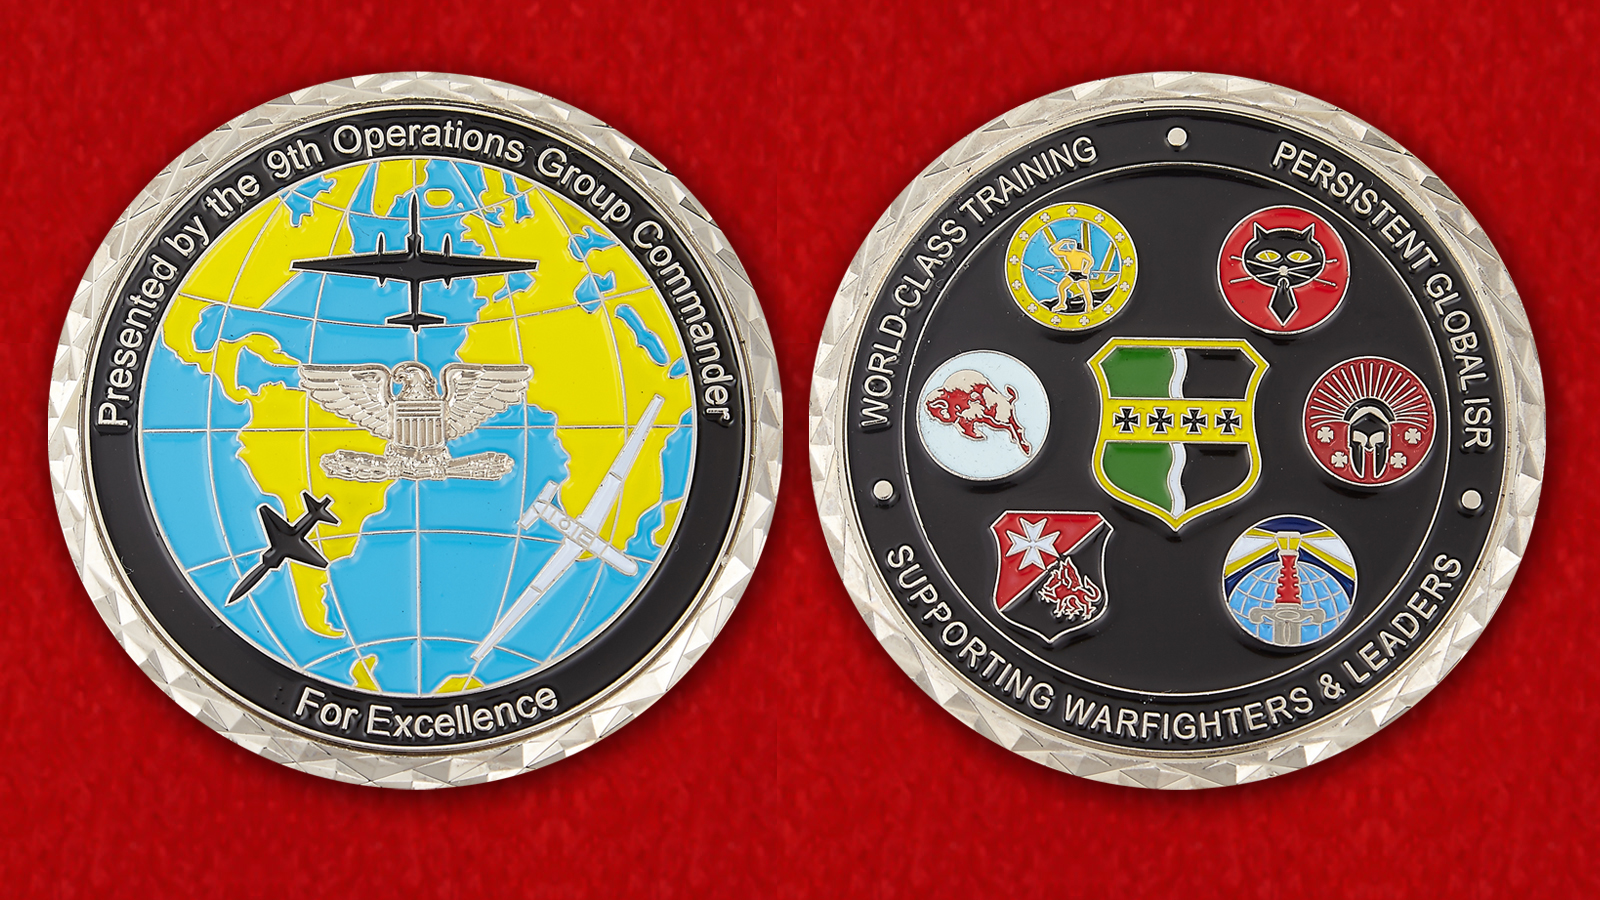 For Exellence Presented by the 9th Operations Group Commander Challenge Coin - obverse and reverse